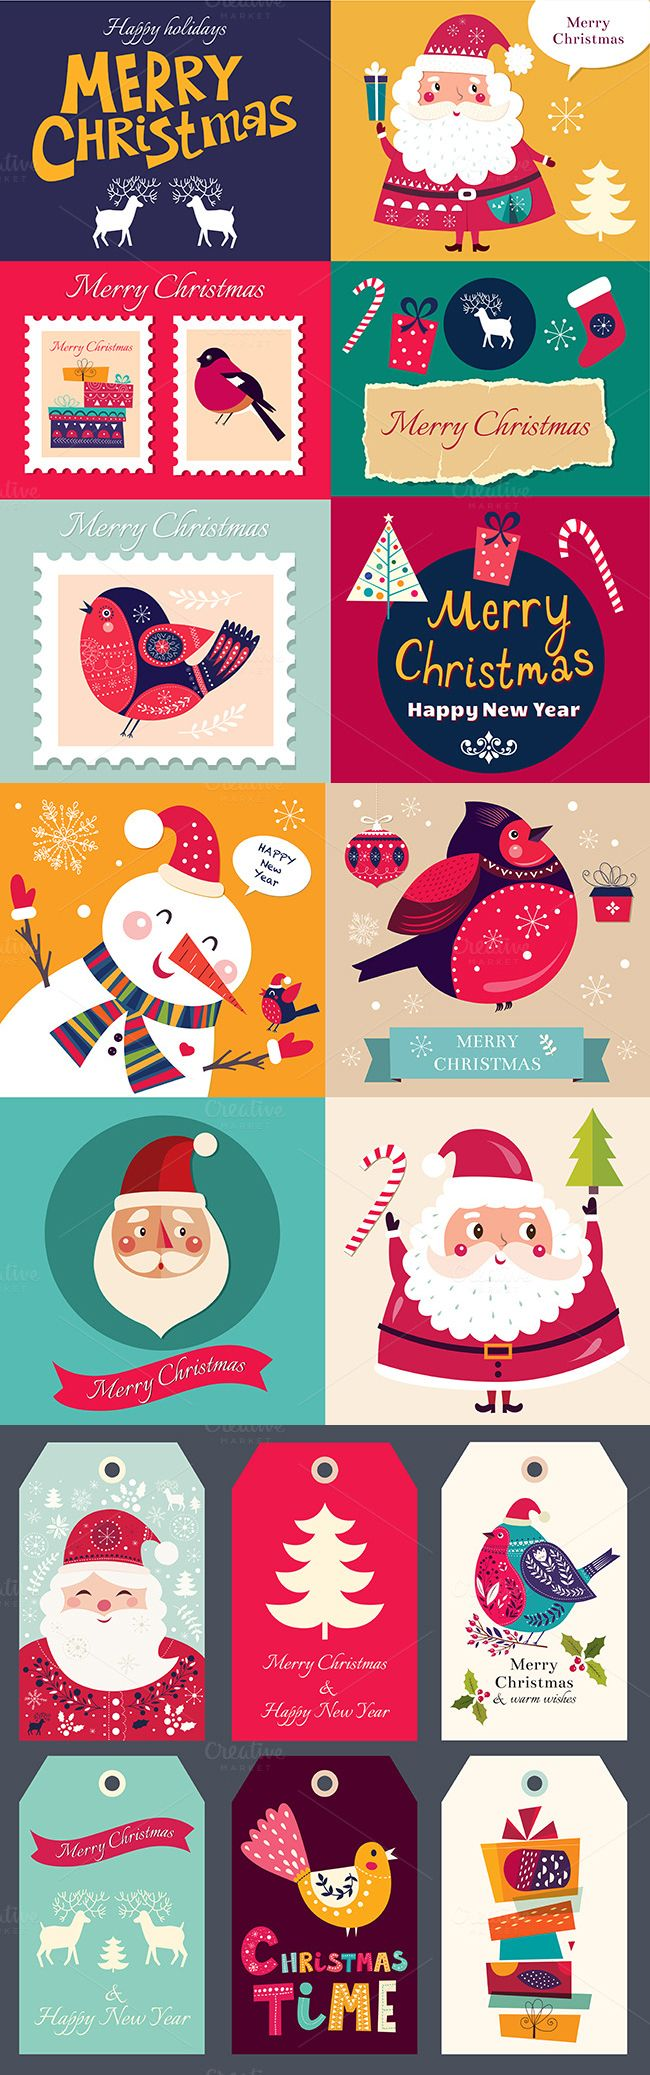 Christmas badges and cards Vector Template EPS, AI Illustrator #design Download: https://creativemarket.com/MoleskoStudio/425862-Christmas-badges-and-cards?u=ksioks